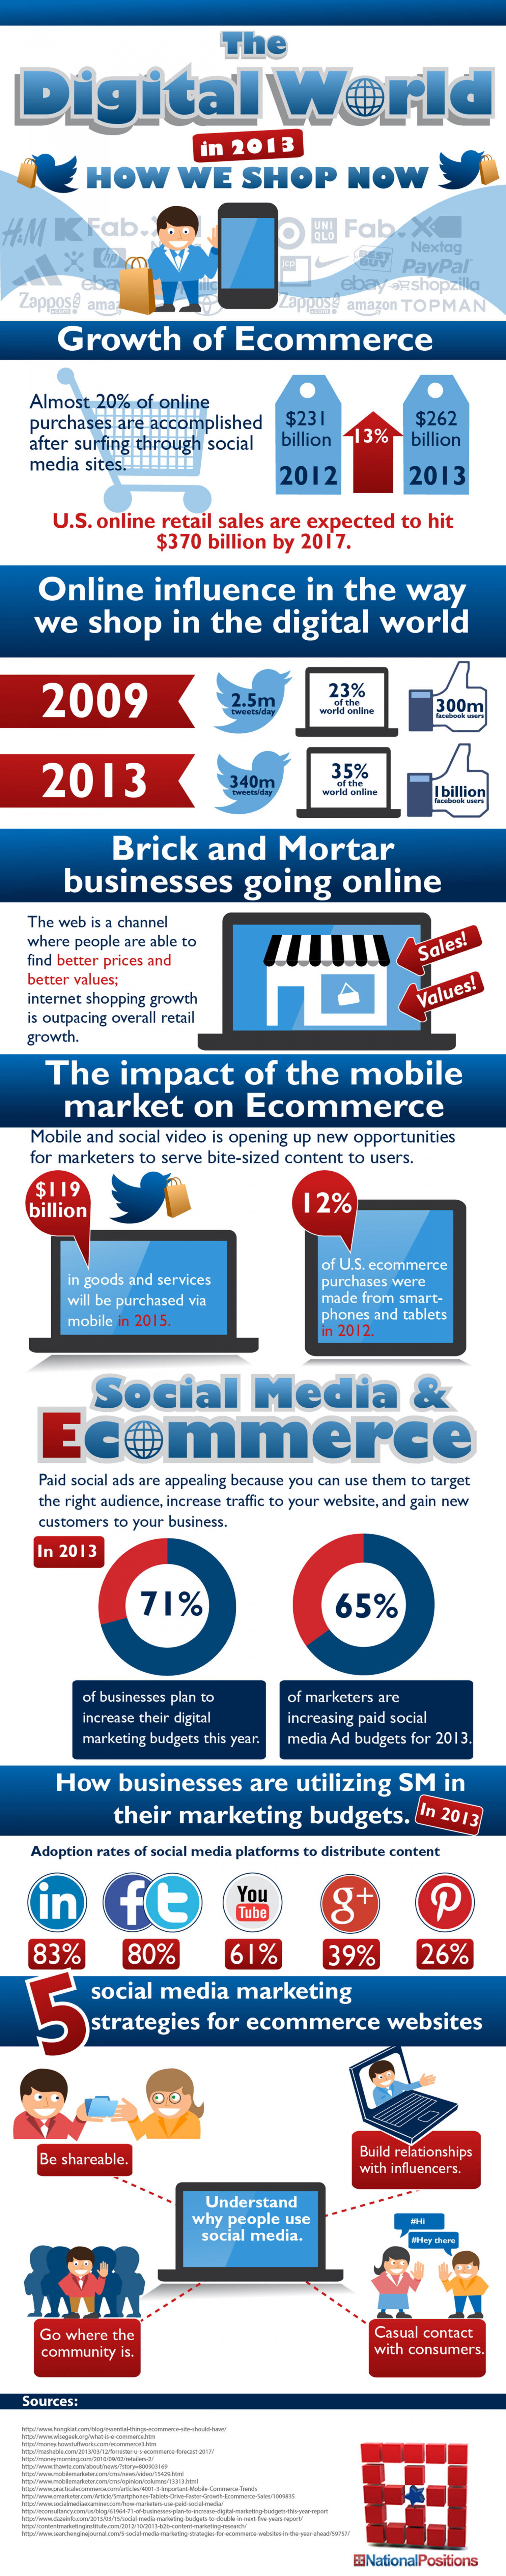 The Digital World in 2013: How We Shop Now Infographic